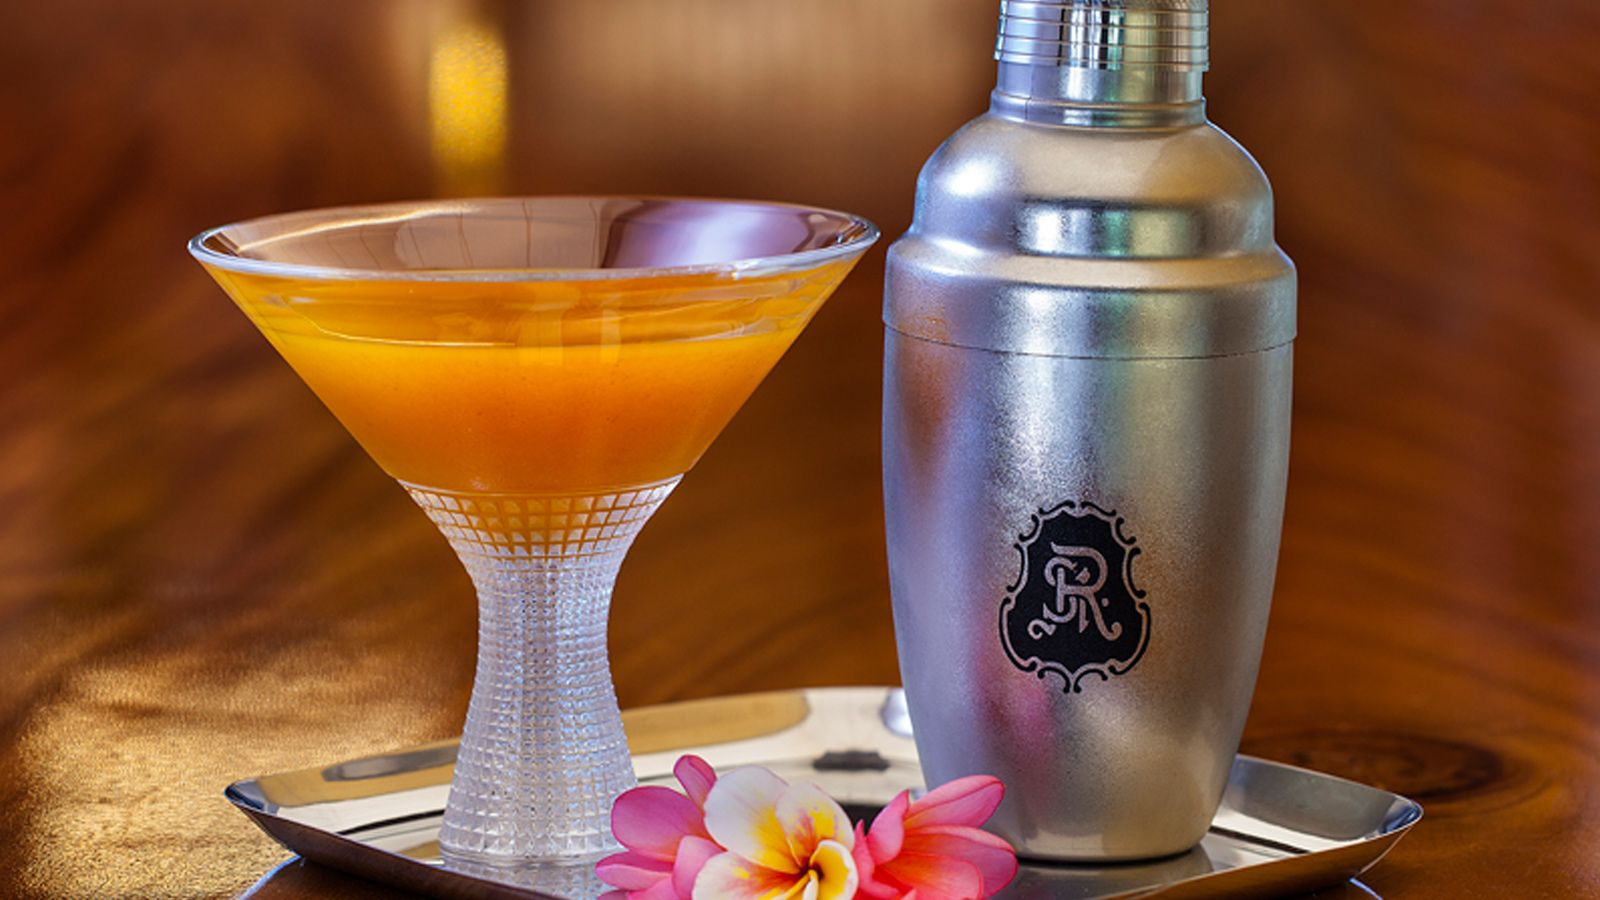 Martini experience at the St. Regis Bali Resort